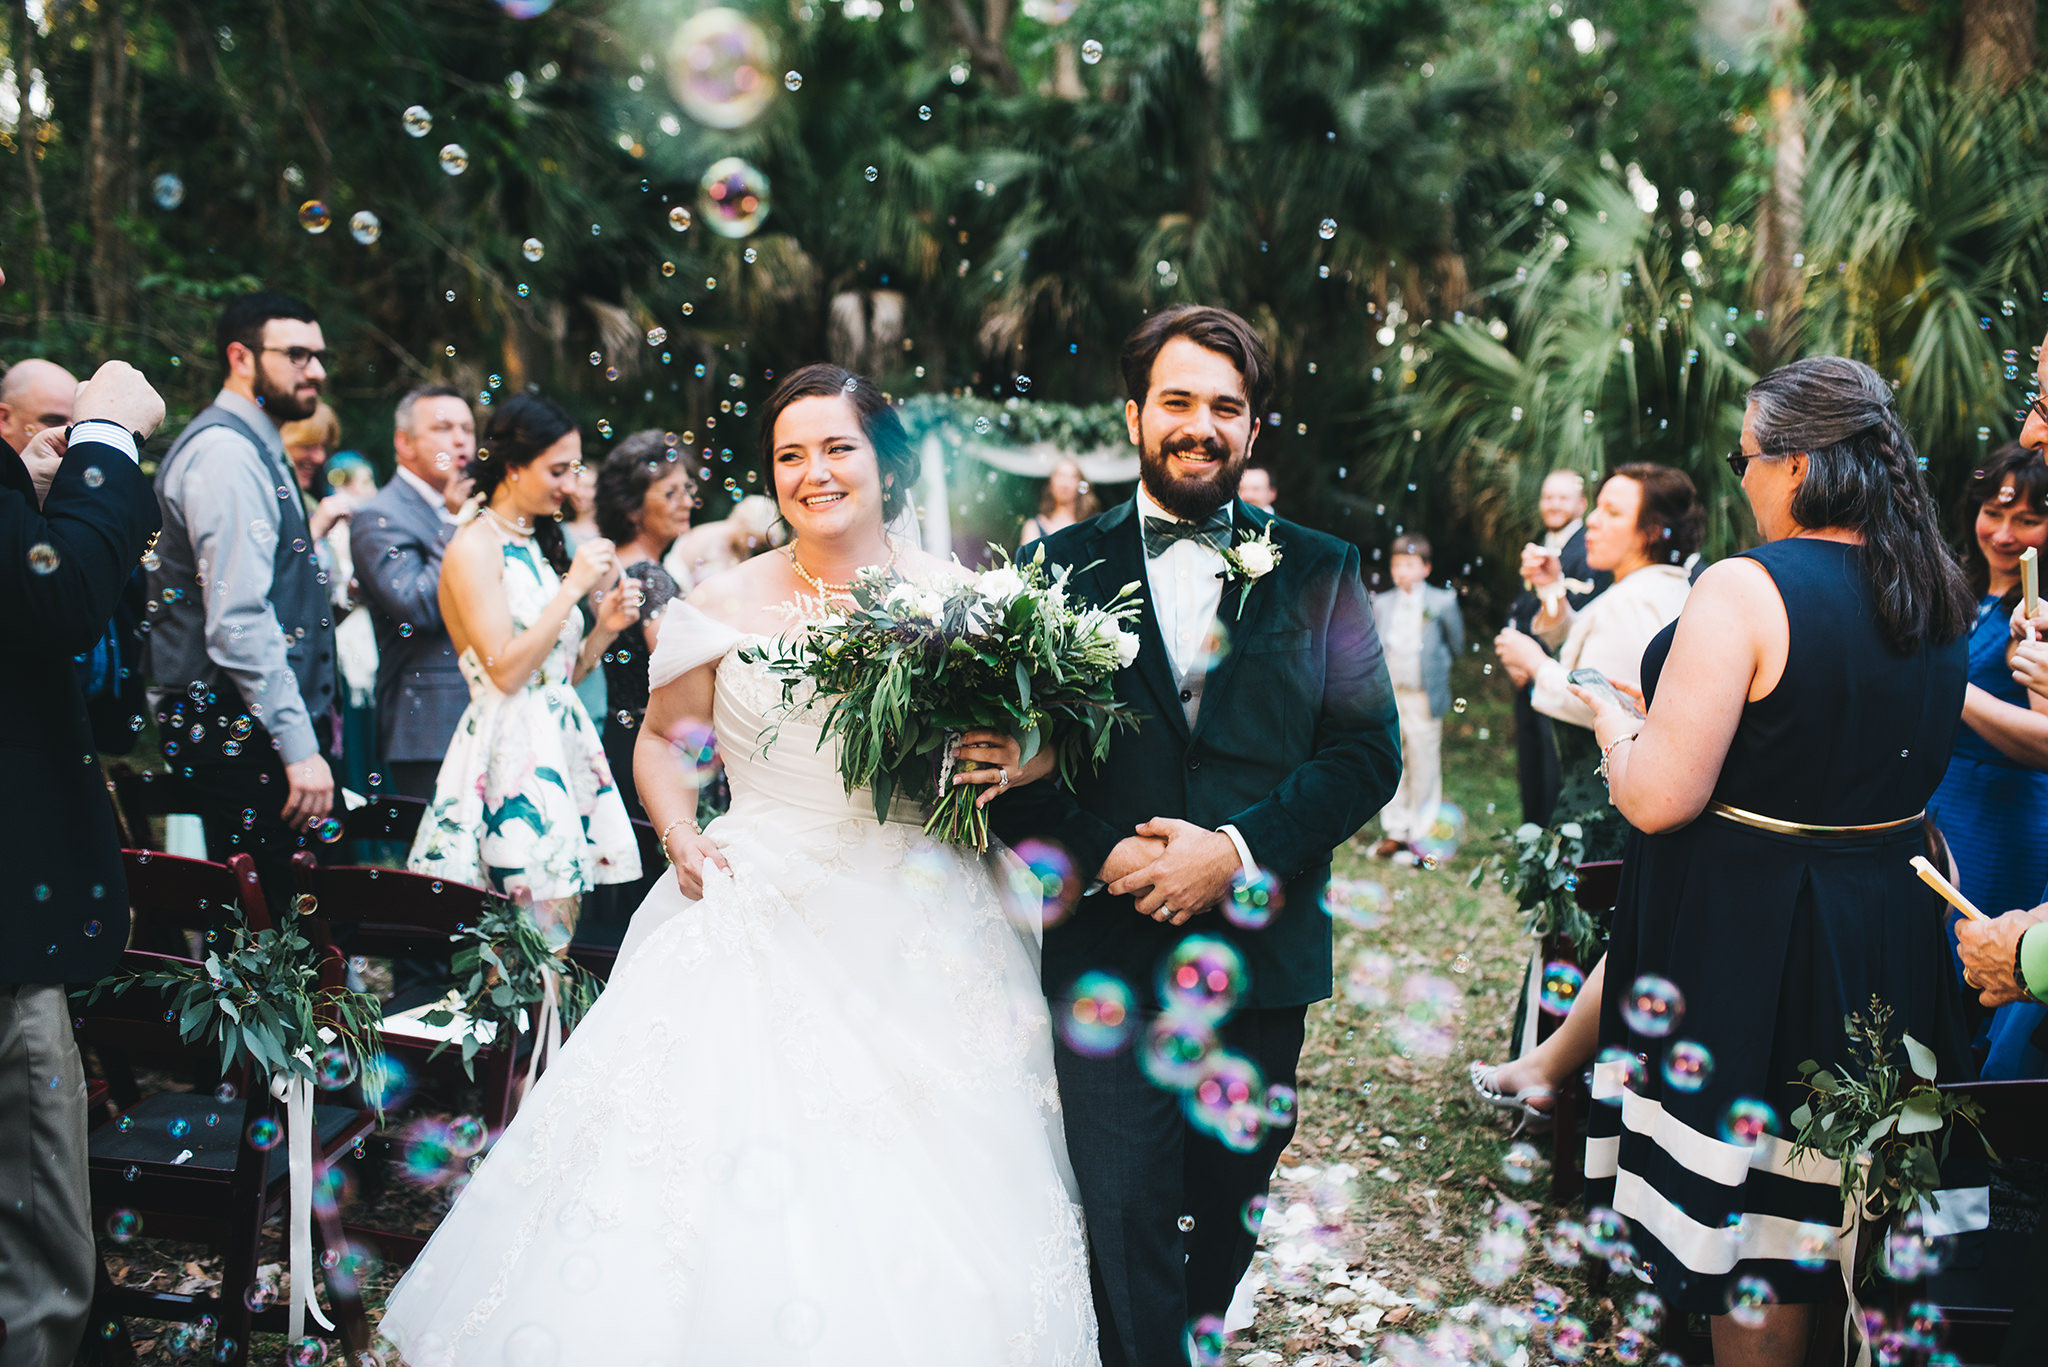 Rudy & Marta Photography - happy newlyweds walking down the aisle among bubbles